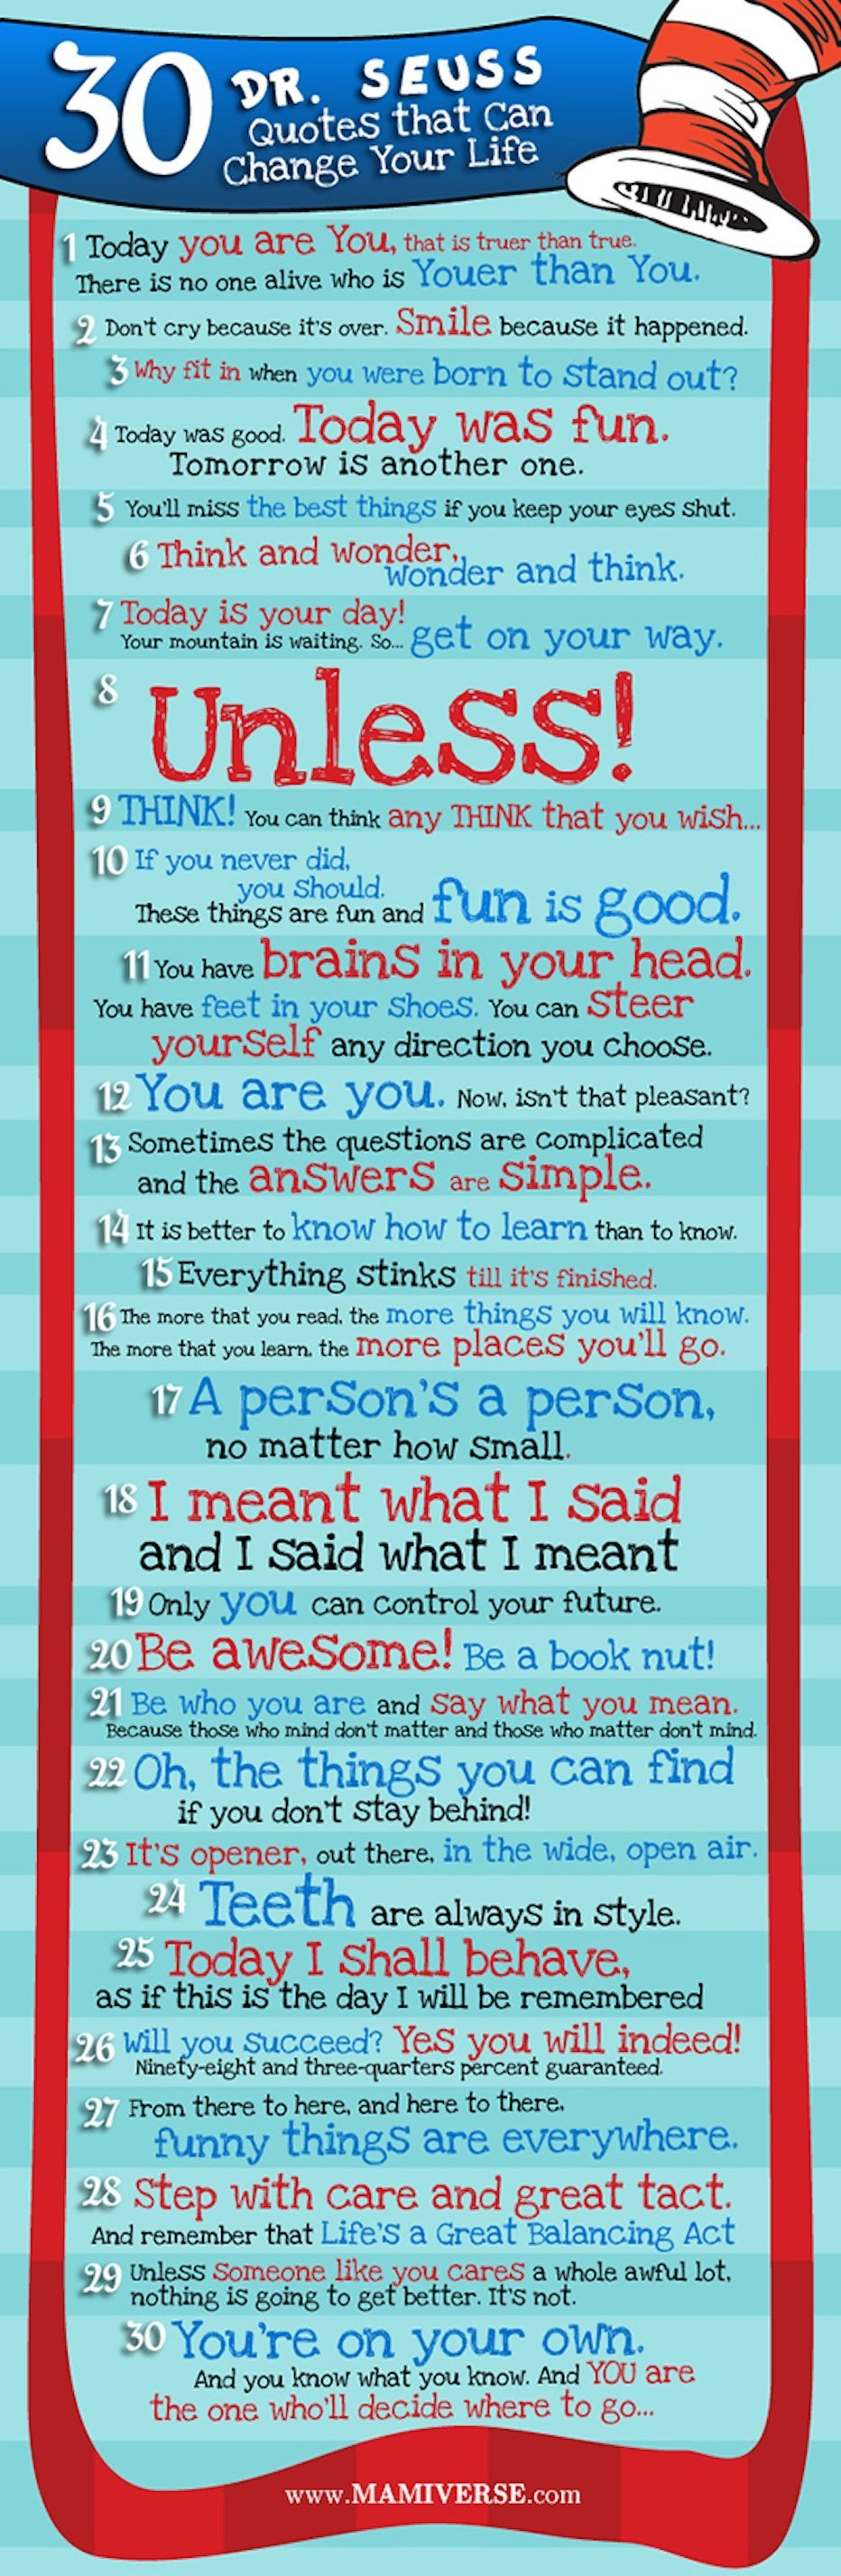 Dr Seuss Quotes from http://www.upworthy.com/